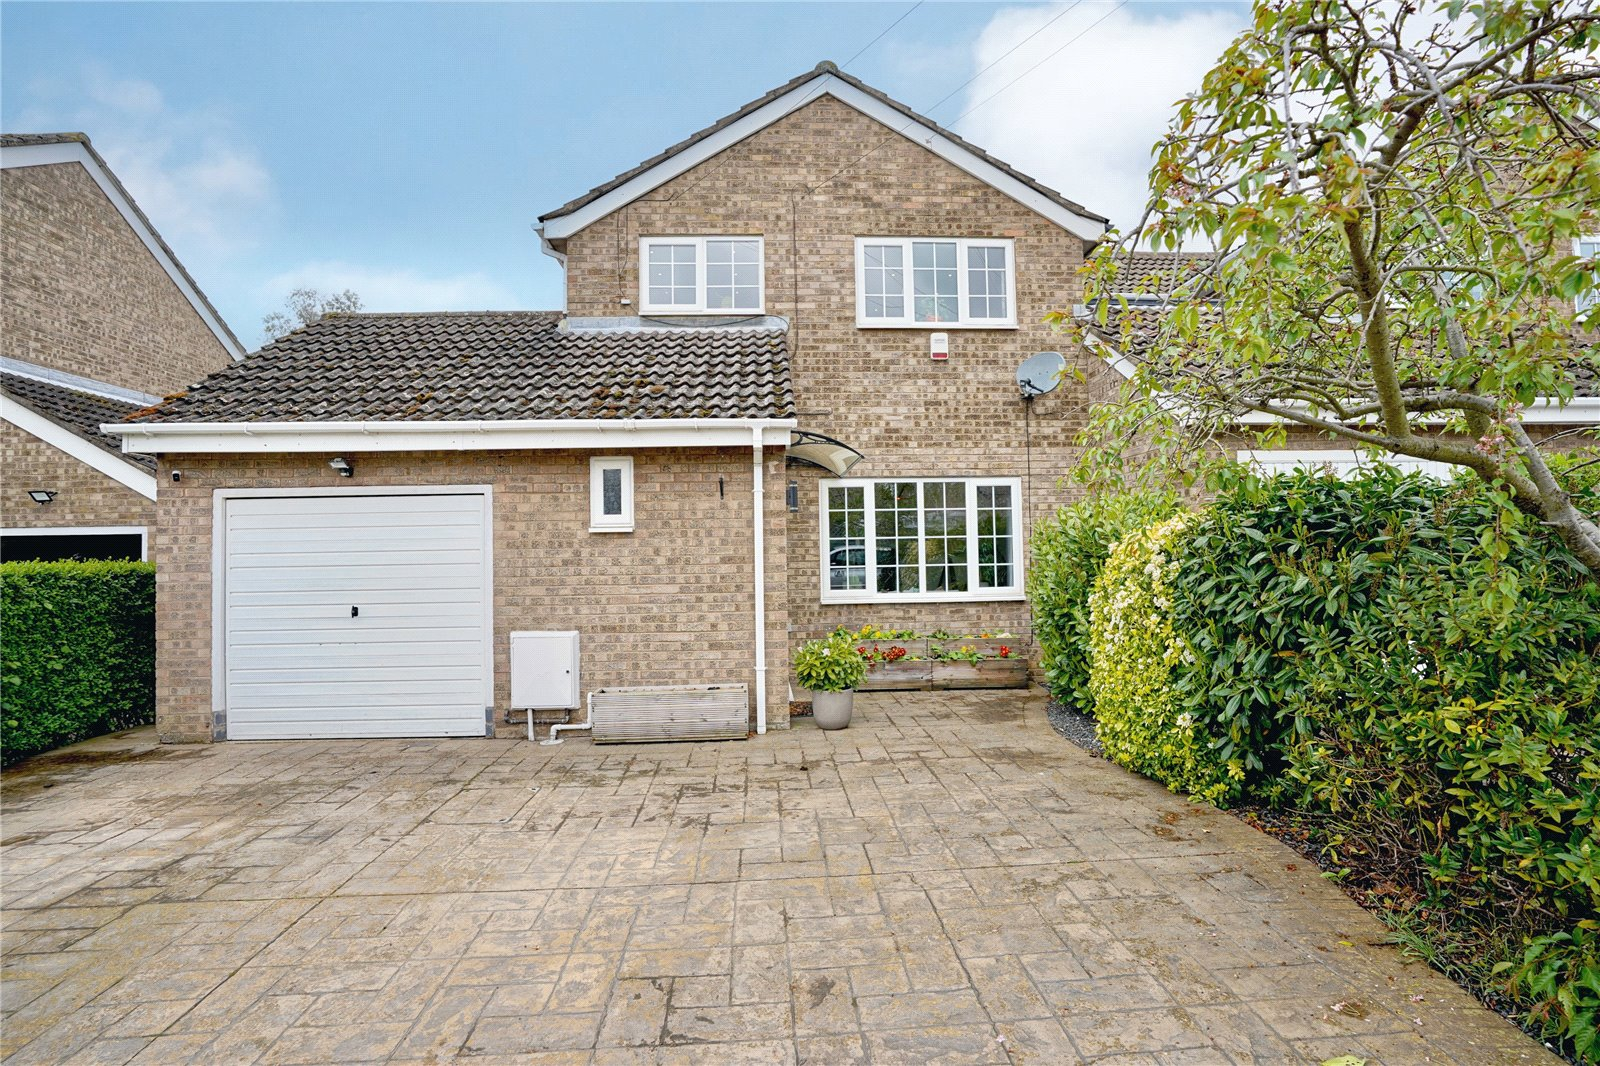 4 bed house for sale in Staughton Place, Eaton Socon, PE19